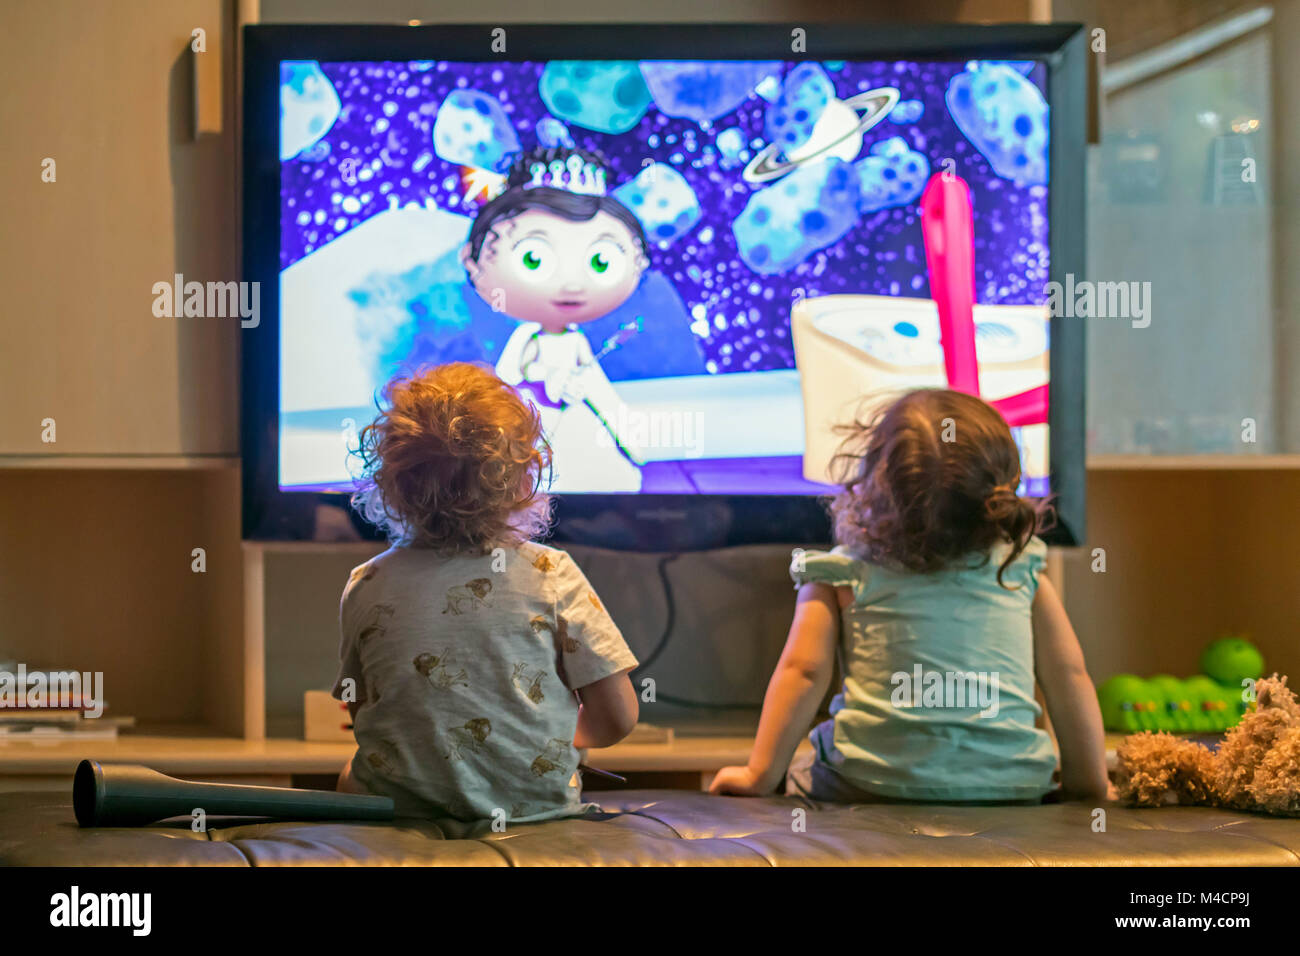 Pre-school children watch cartoons on television. - Stock Image